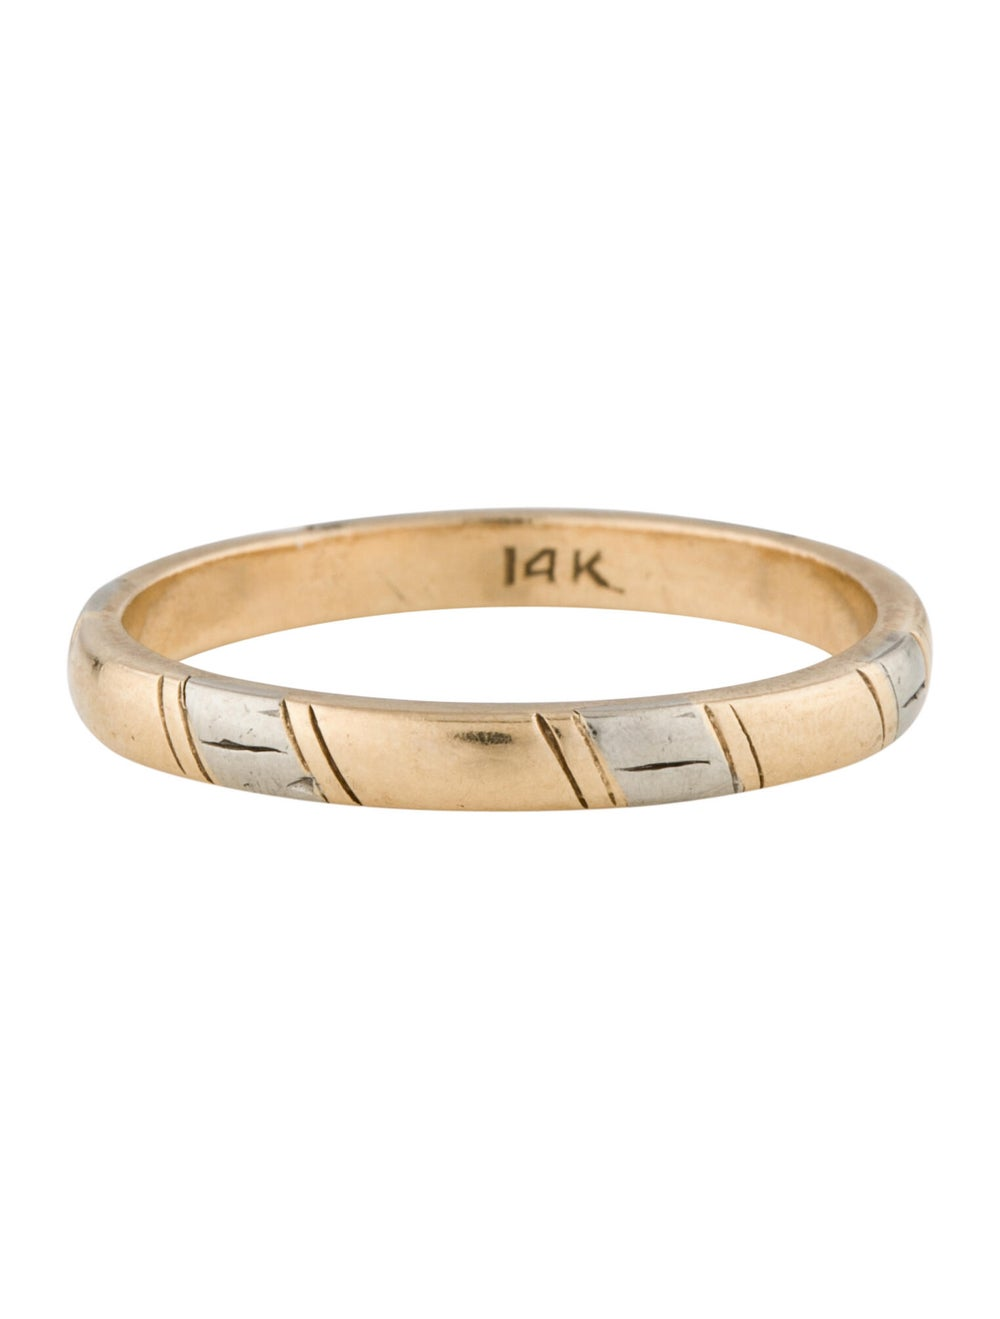 Ring Two-Tone 14K Band Yellow - image 3